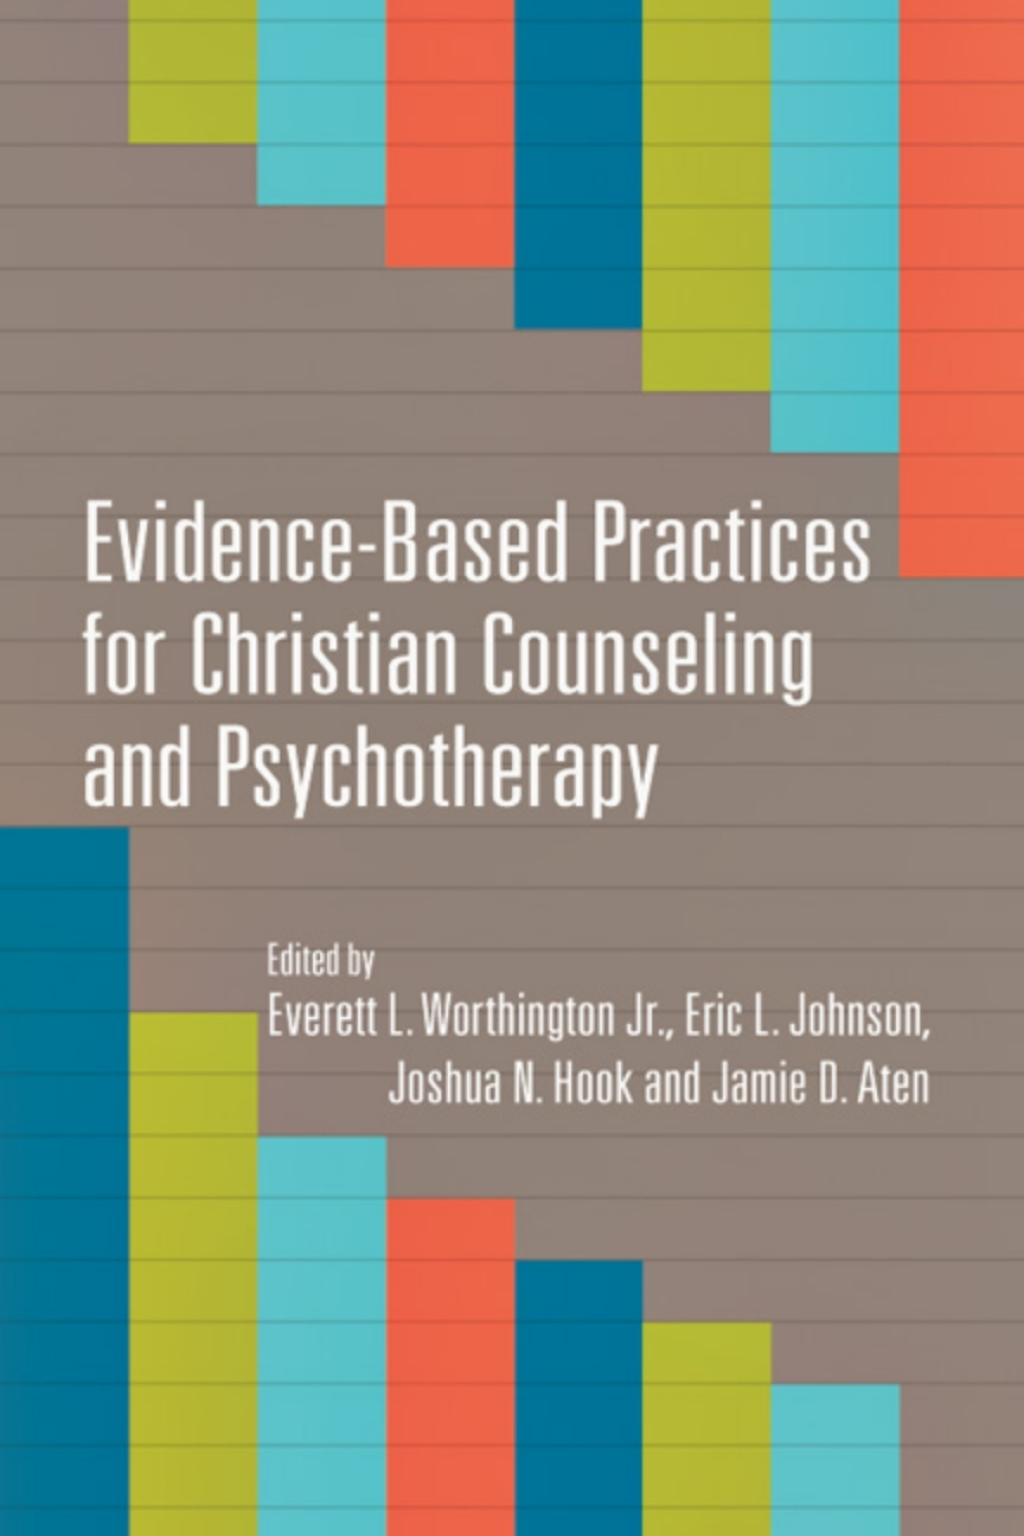 Evidence-Based Practices for Christian Counseling and Psychotherapy (eBook)